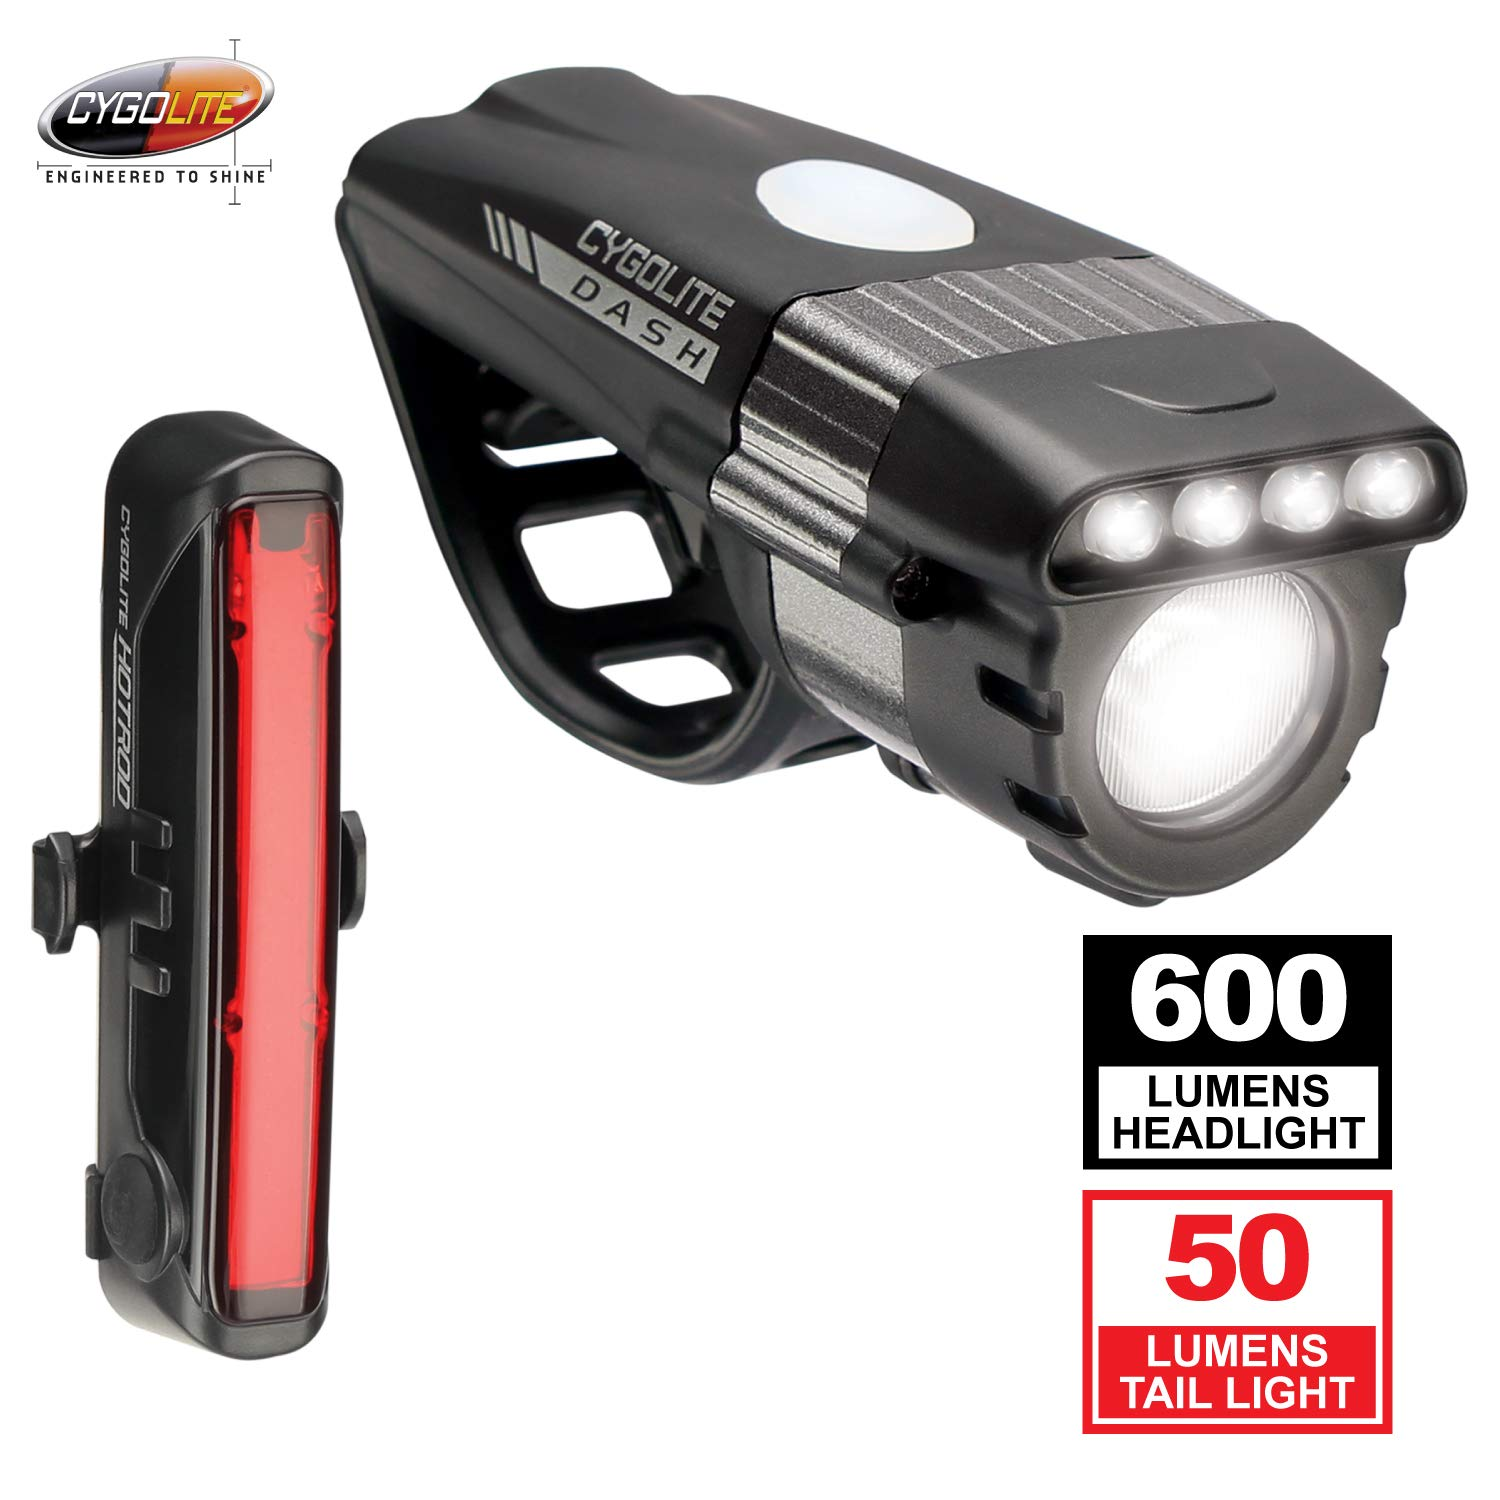 Cygolite Dash Pro 600 Lumen Headlight & Hotrod 50 Lumen Tail Light USB Rechargeable Bicycle Light Combo Set